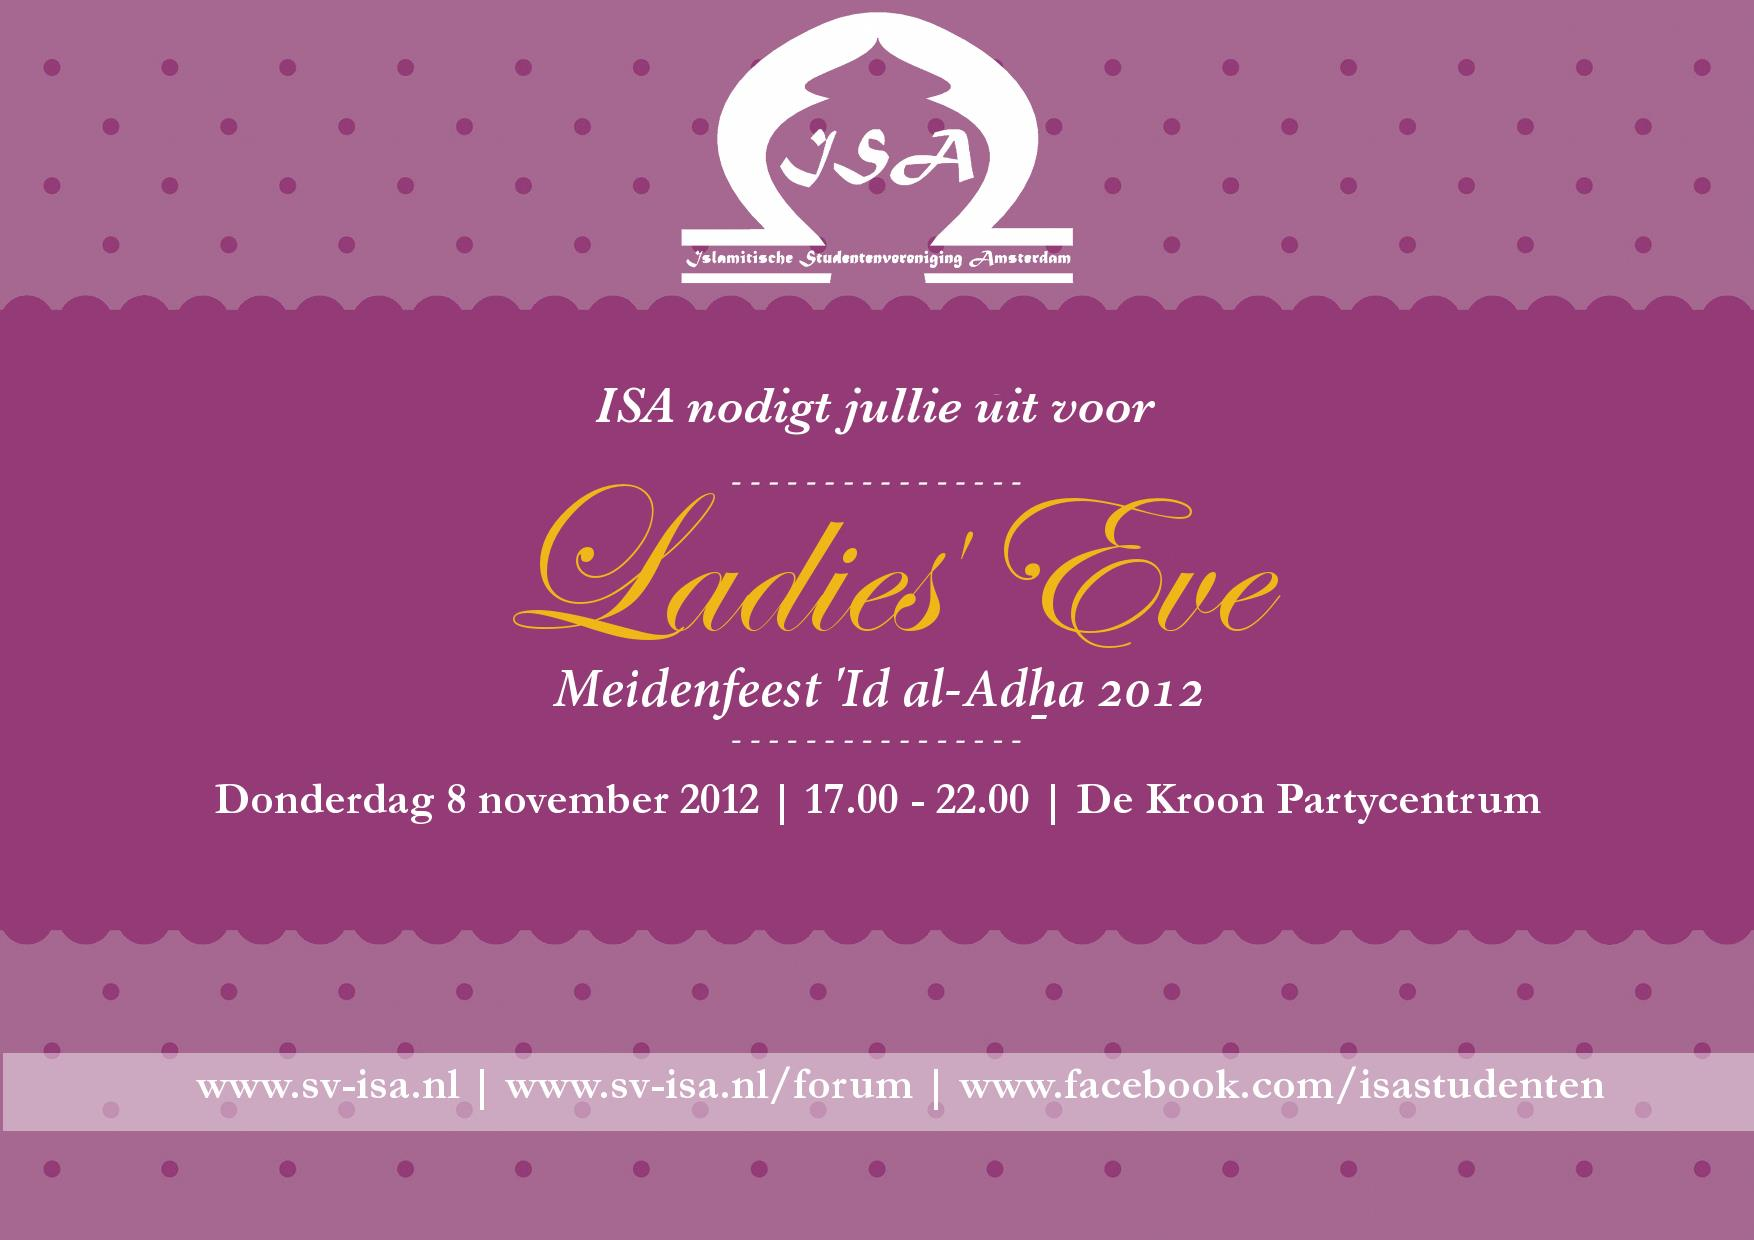 Ladies' Eve 2012: Meidenfeest 'Id al-Adha